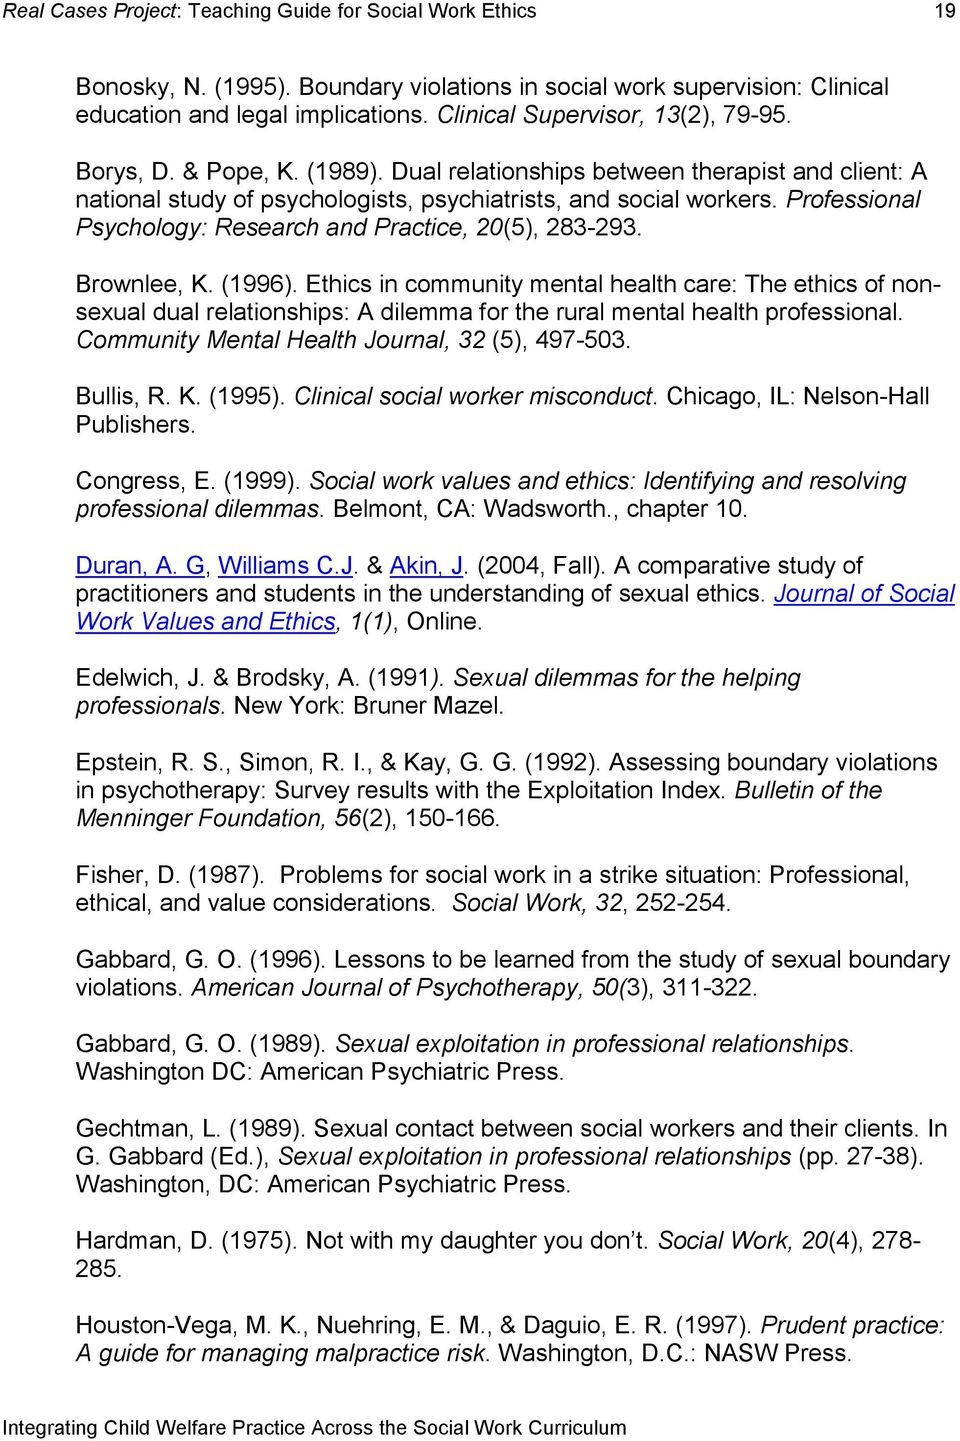 (1996). Ethics in community mental health care: The ethics of nonsexual dual relationships: A dilemma for the rural mental health professional. Community Mental Health Journal, 32 (5), 497-503.